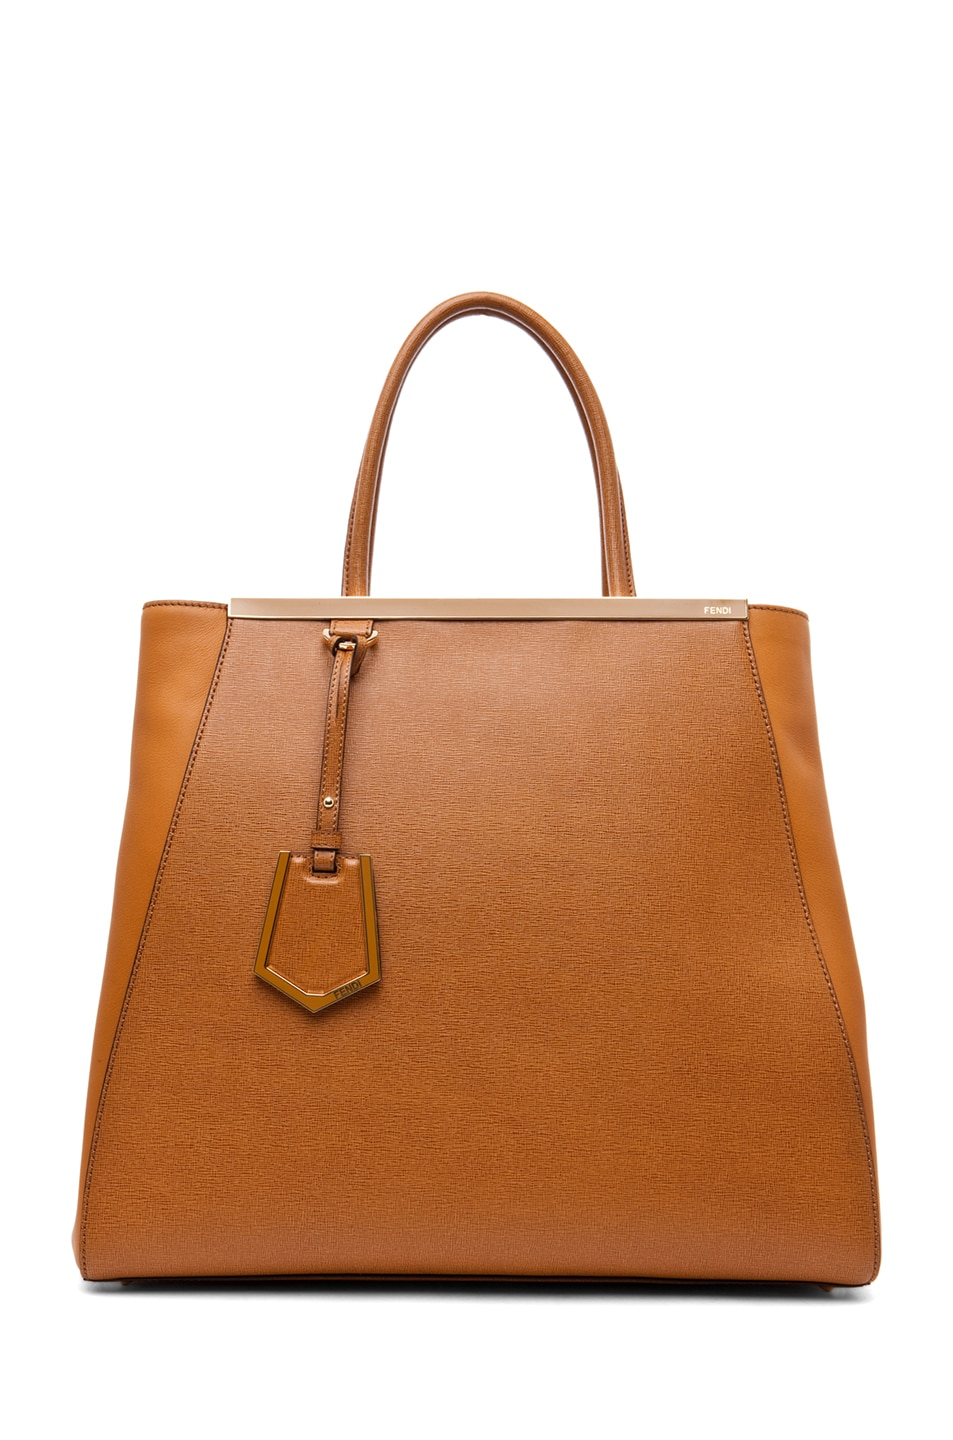 Image 1 of Fendi Large Shopper Bag in Dark Orange